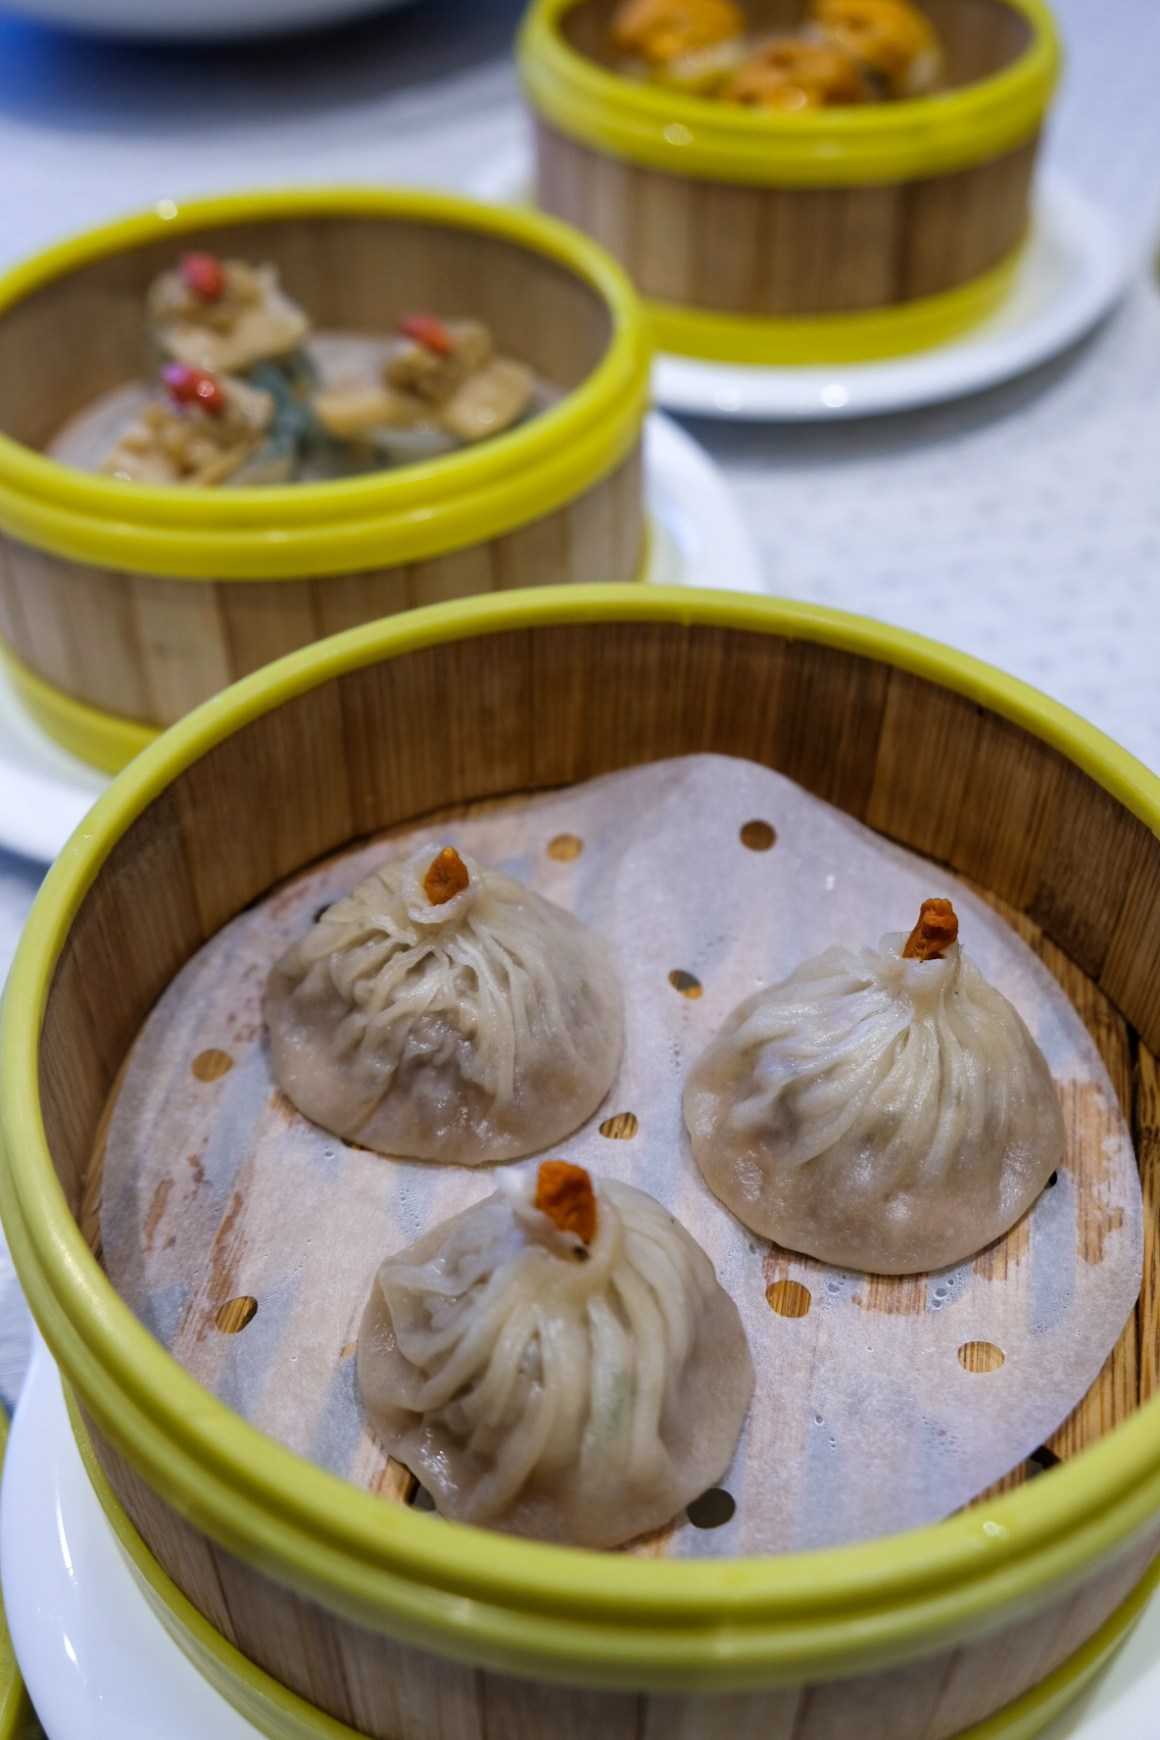 Peach Garden Oishi Flavours of Japan - Steamed Xiao Long Bao with A5 Wagyu Beef 日本 A5 和牛小笼包 ($8.80++)